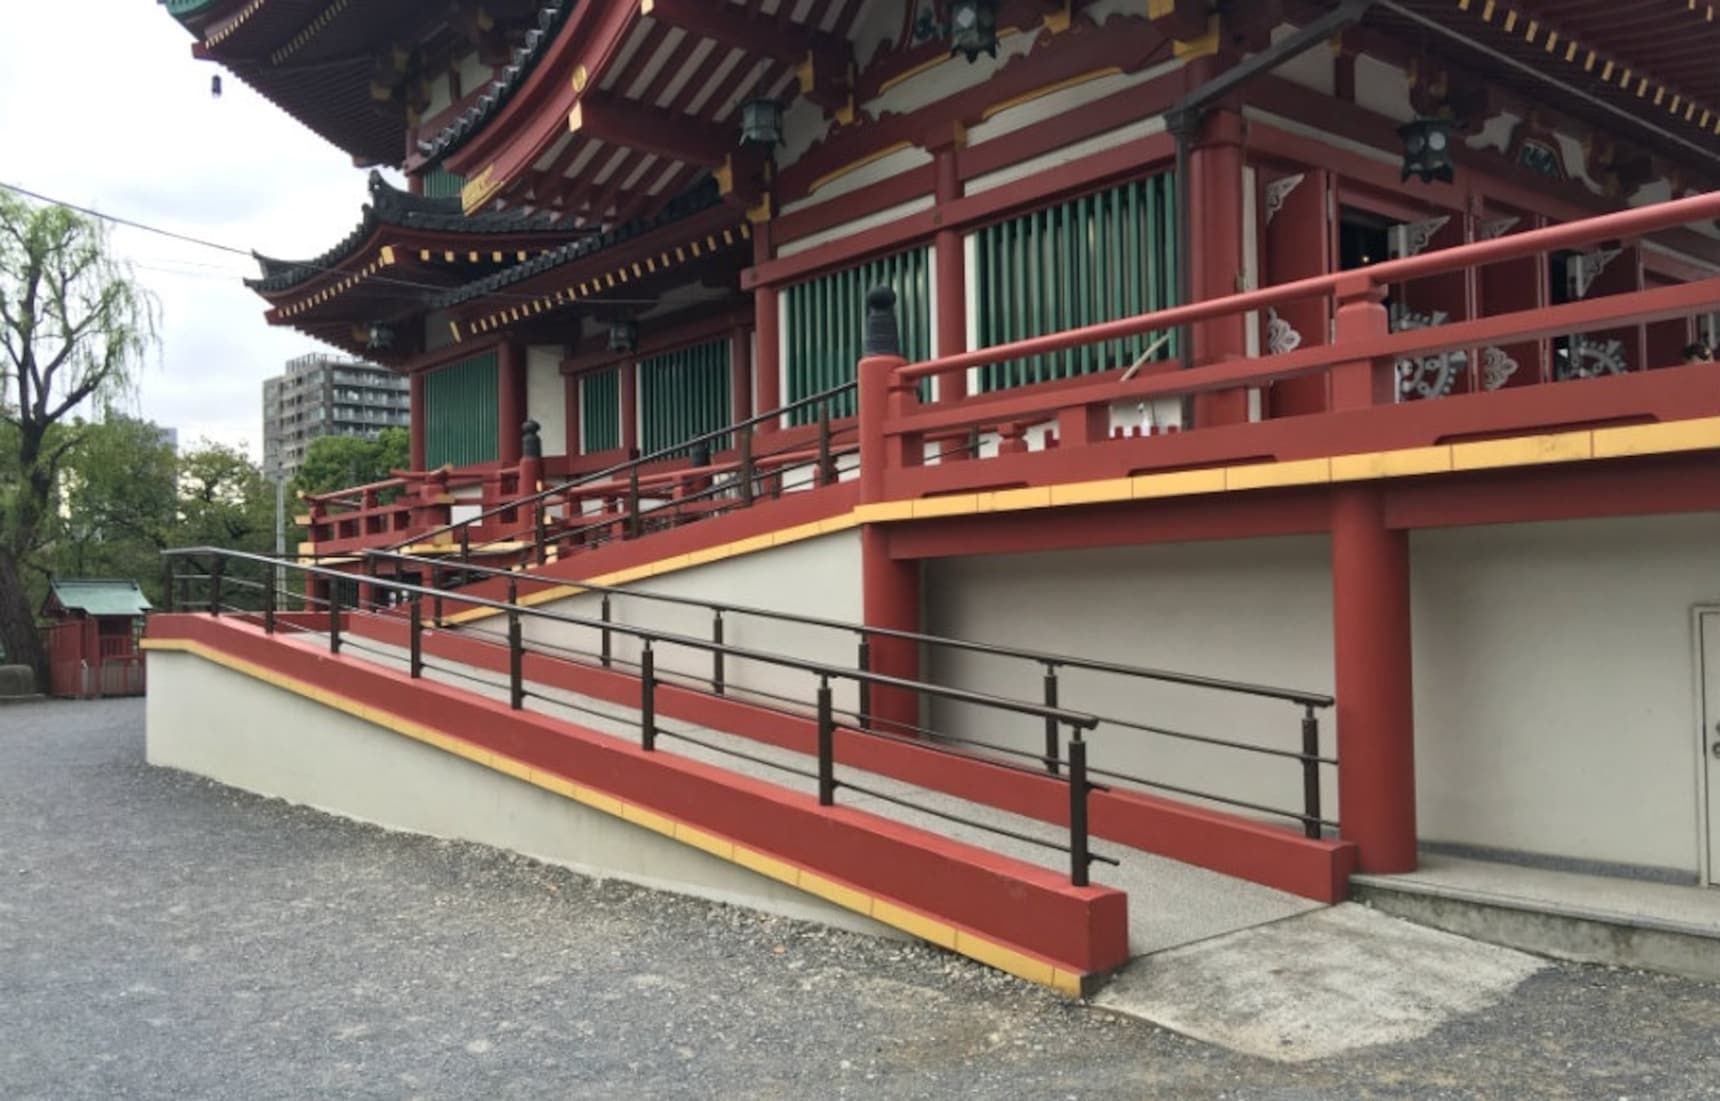 3 Reasons Japan is Great for Accessible Travel